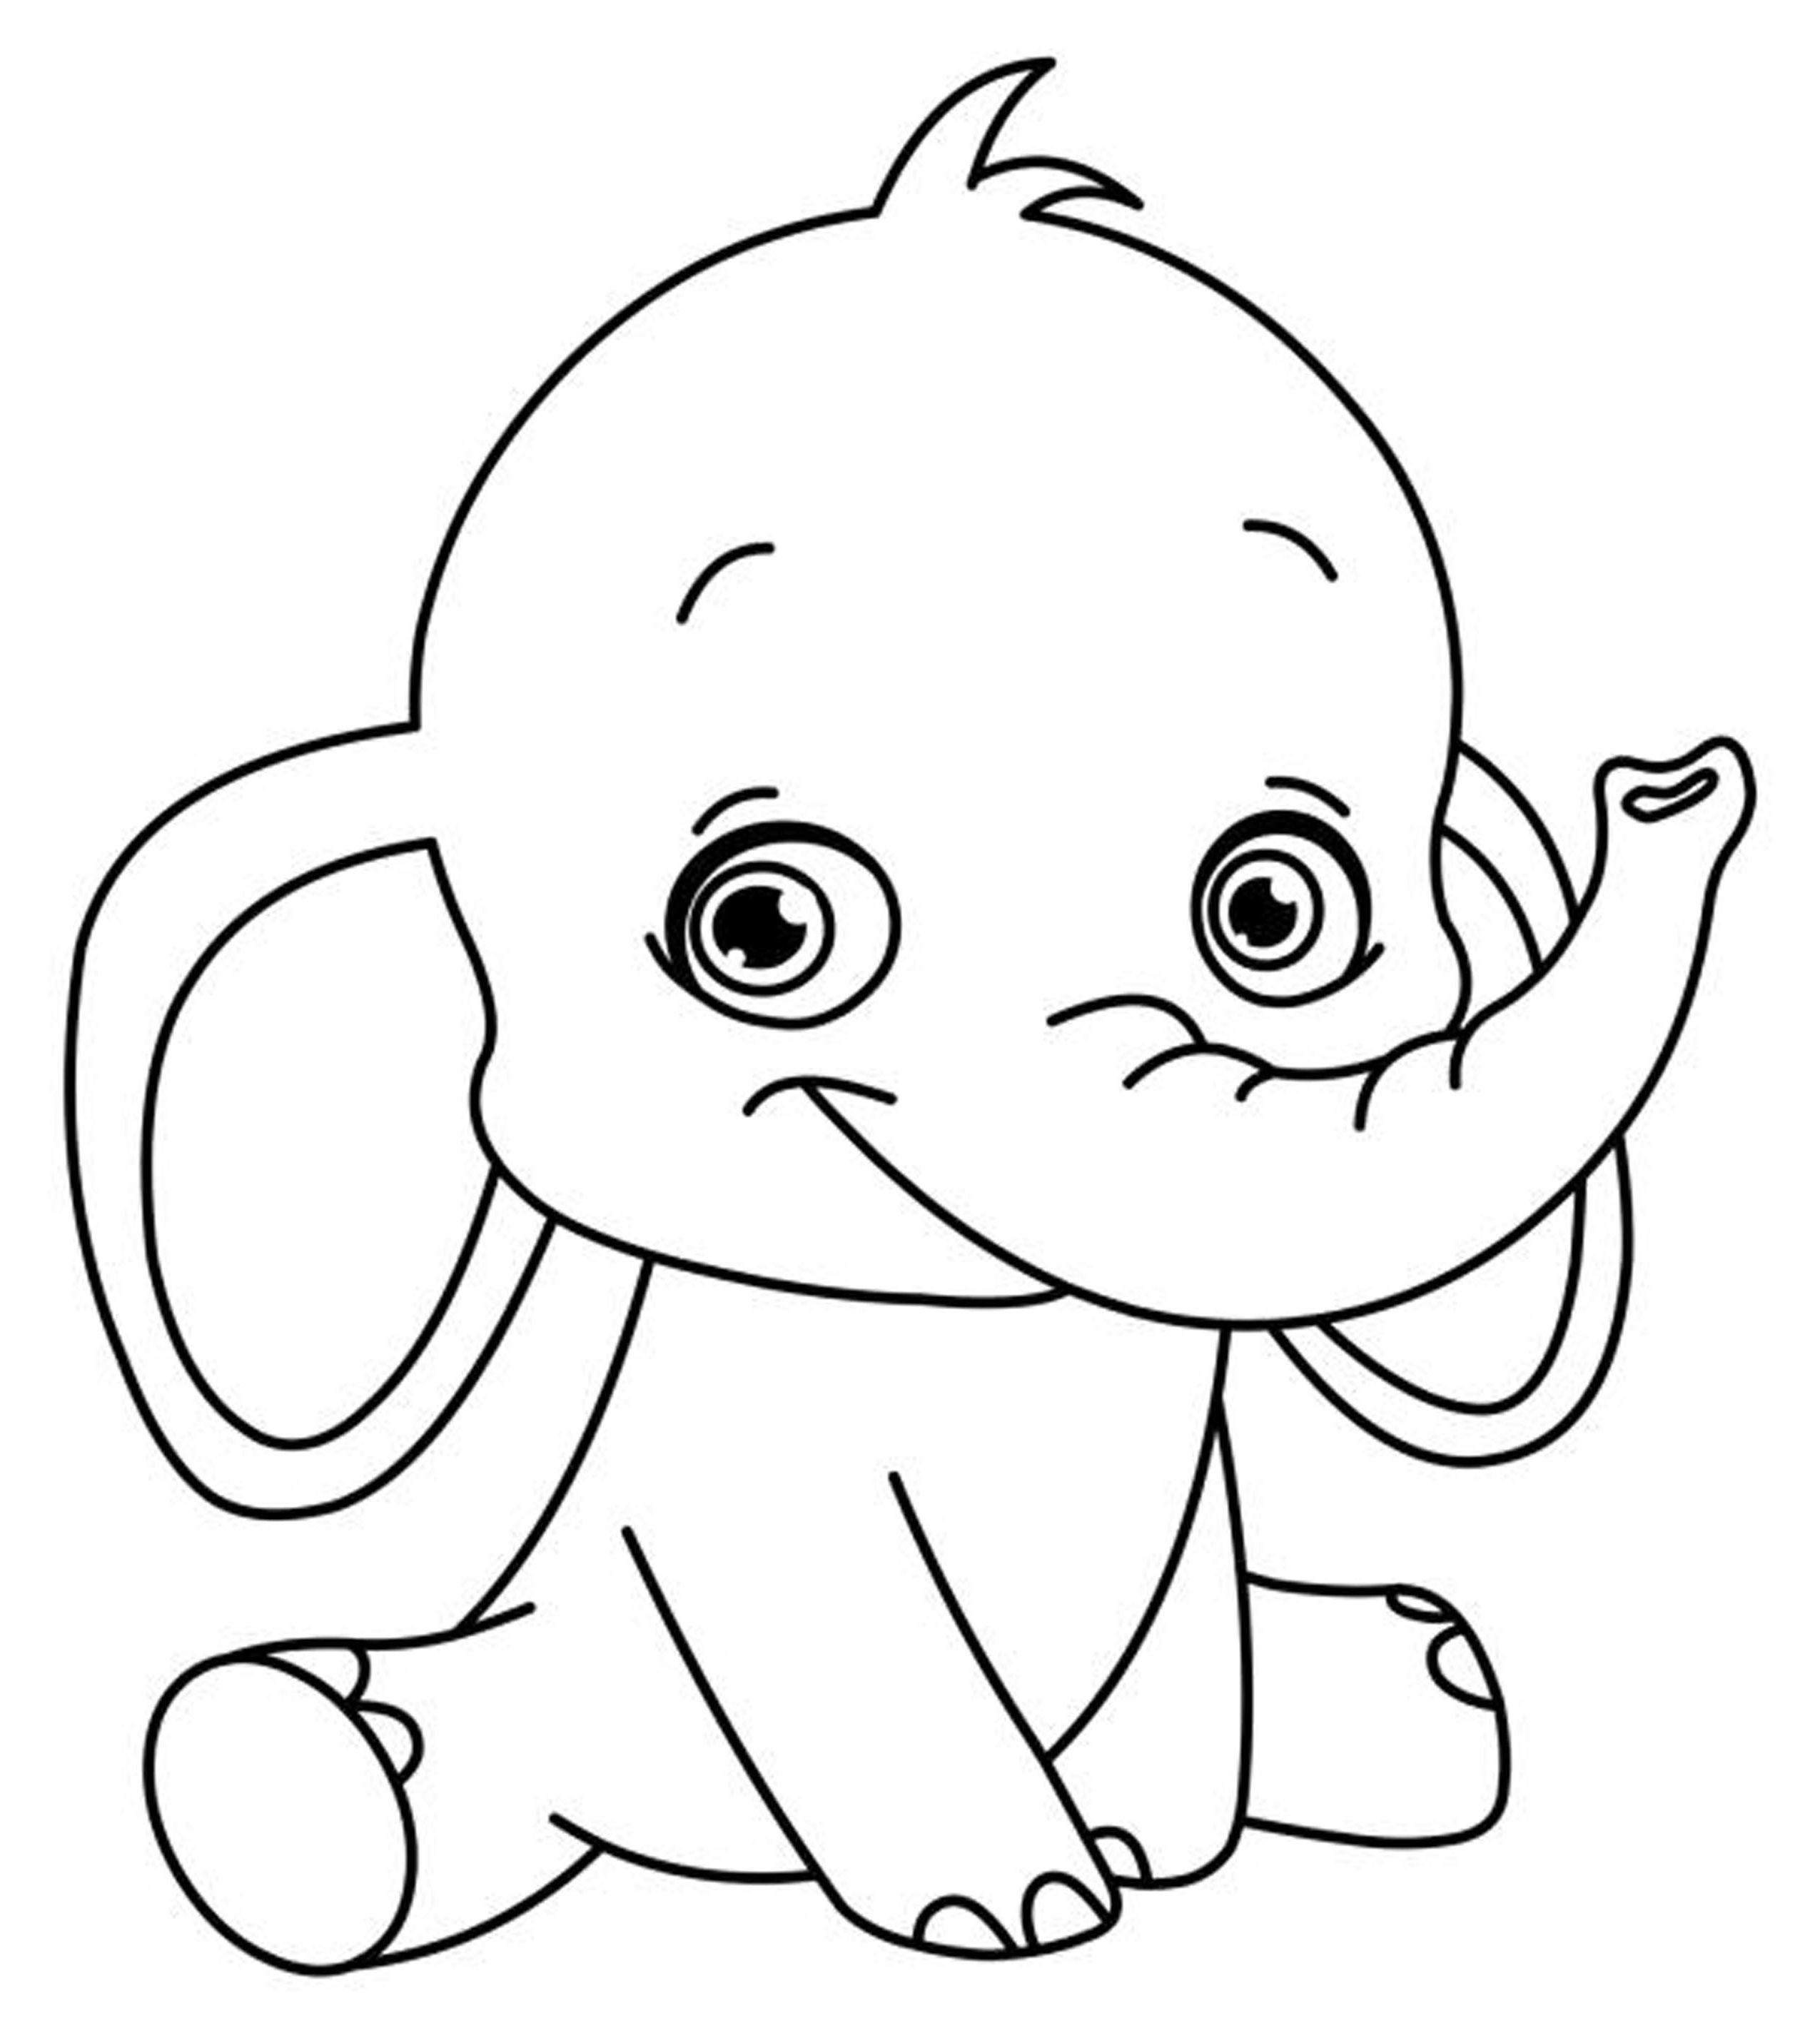 Fun coloring pages for kids to print at getdrawings com free for